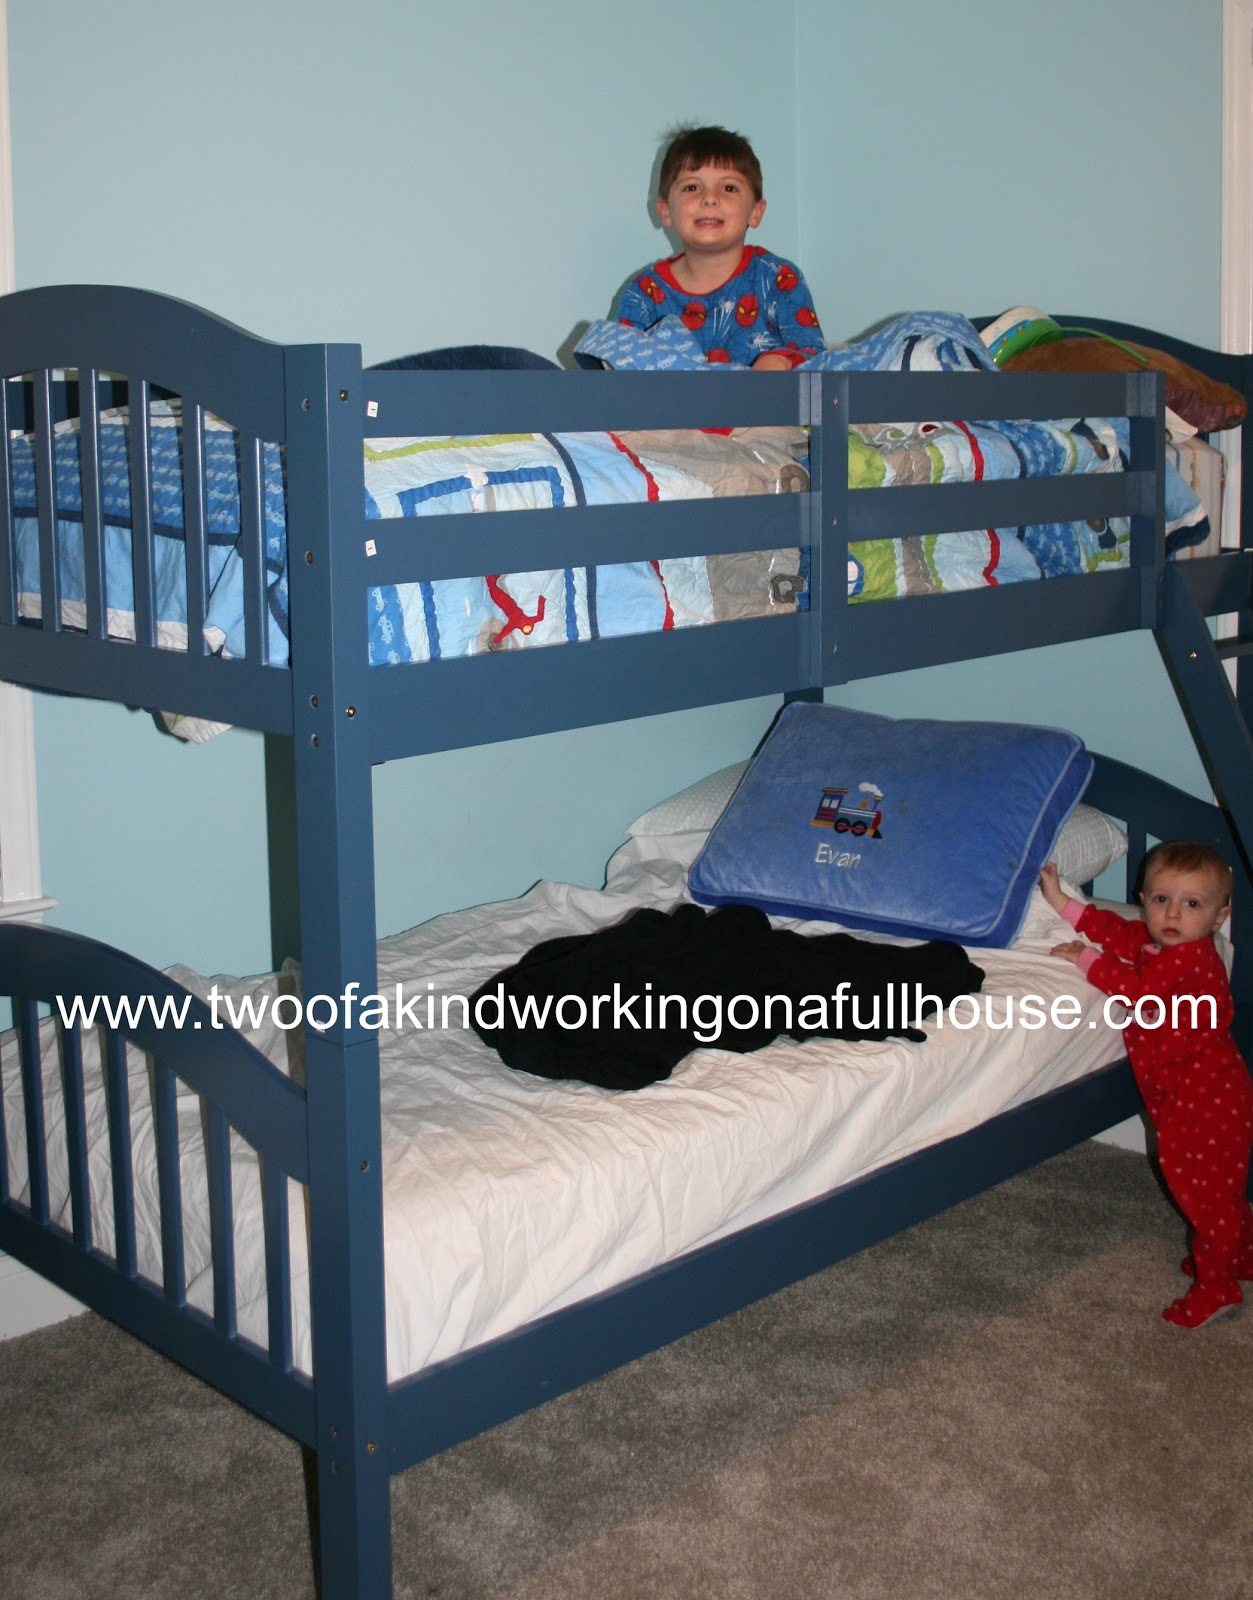 Visit Stork Craft To Learn More About Both Styles Of Their Bunk Beds And To  View All Of Their Other Furniture And Toys. We Own One Of Their Gliders And  ...